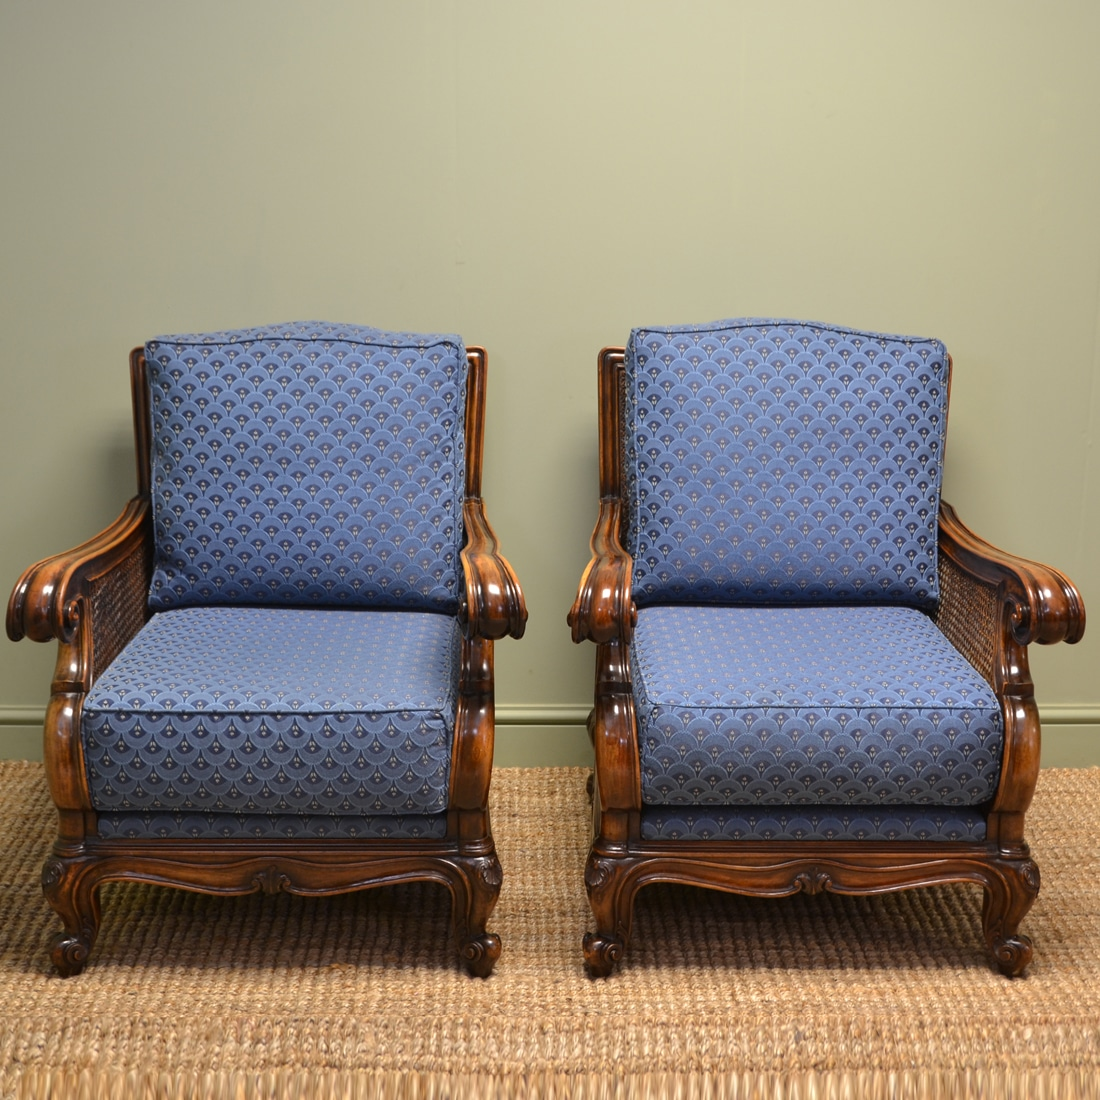 Pair of Matching Edwardian Walnut Antique Bergere Arm Chairs